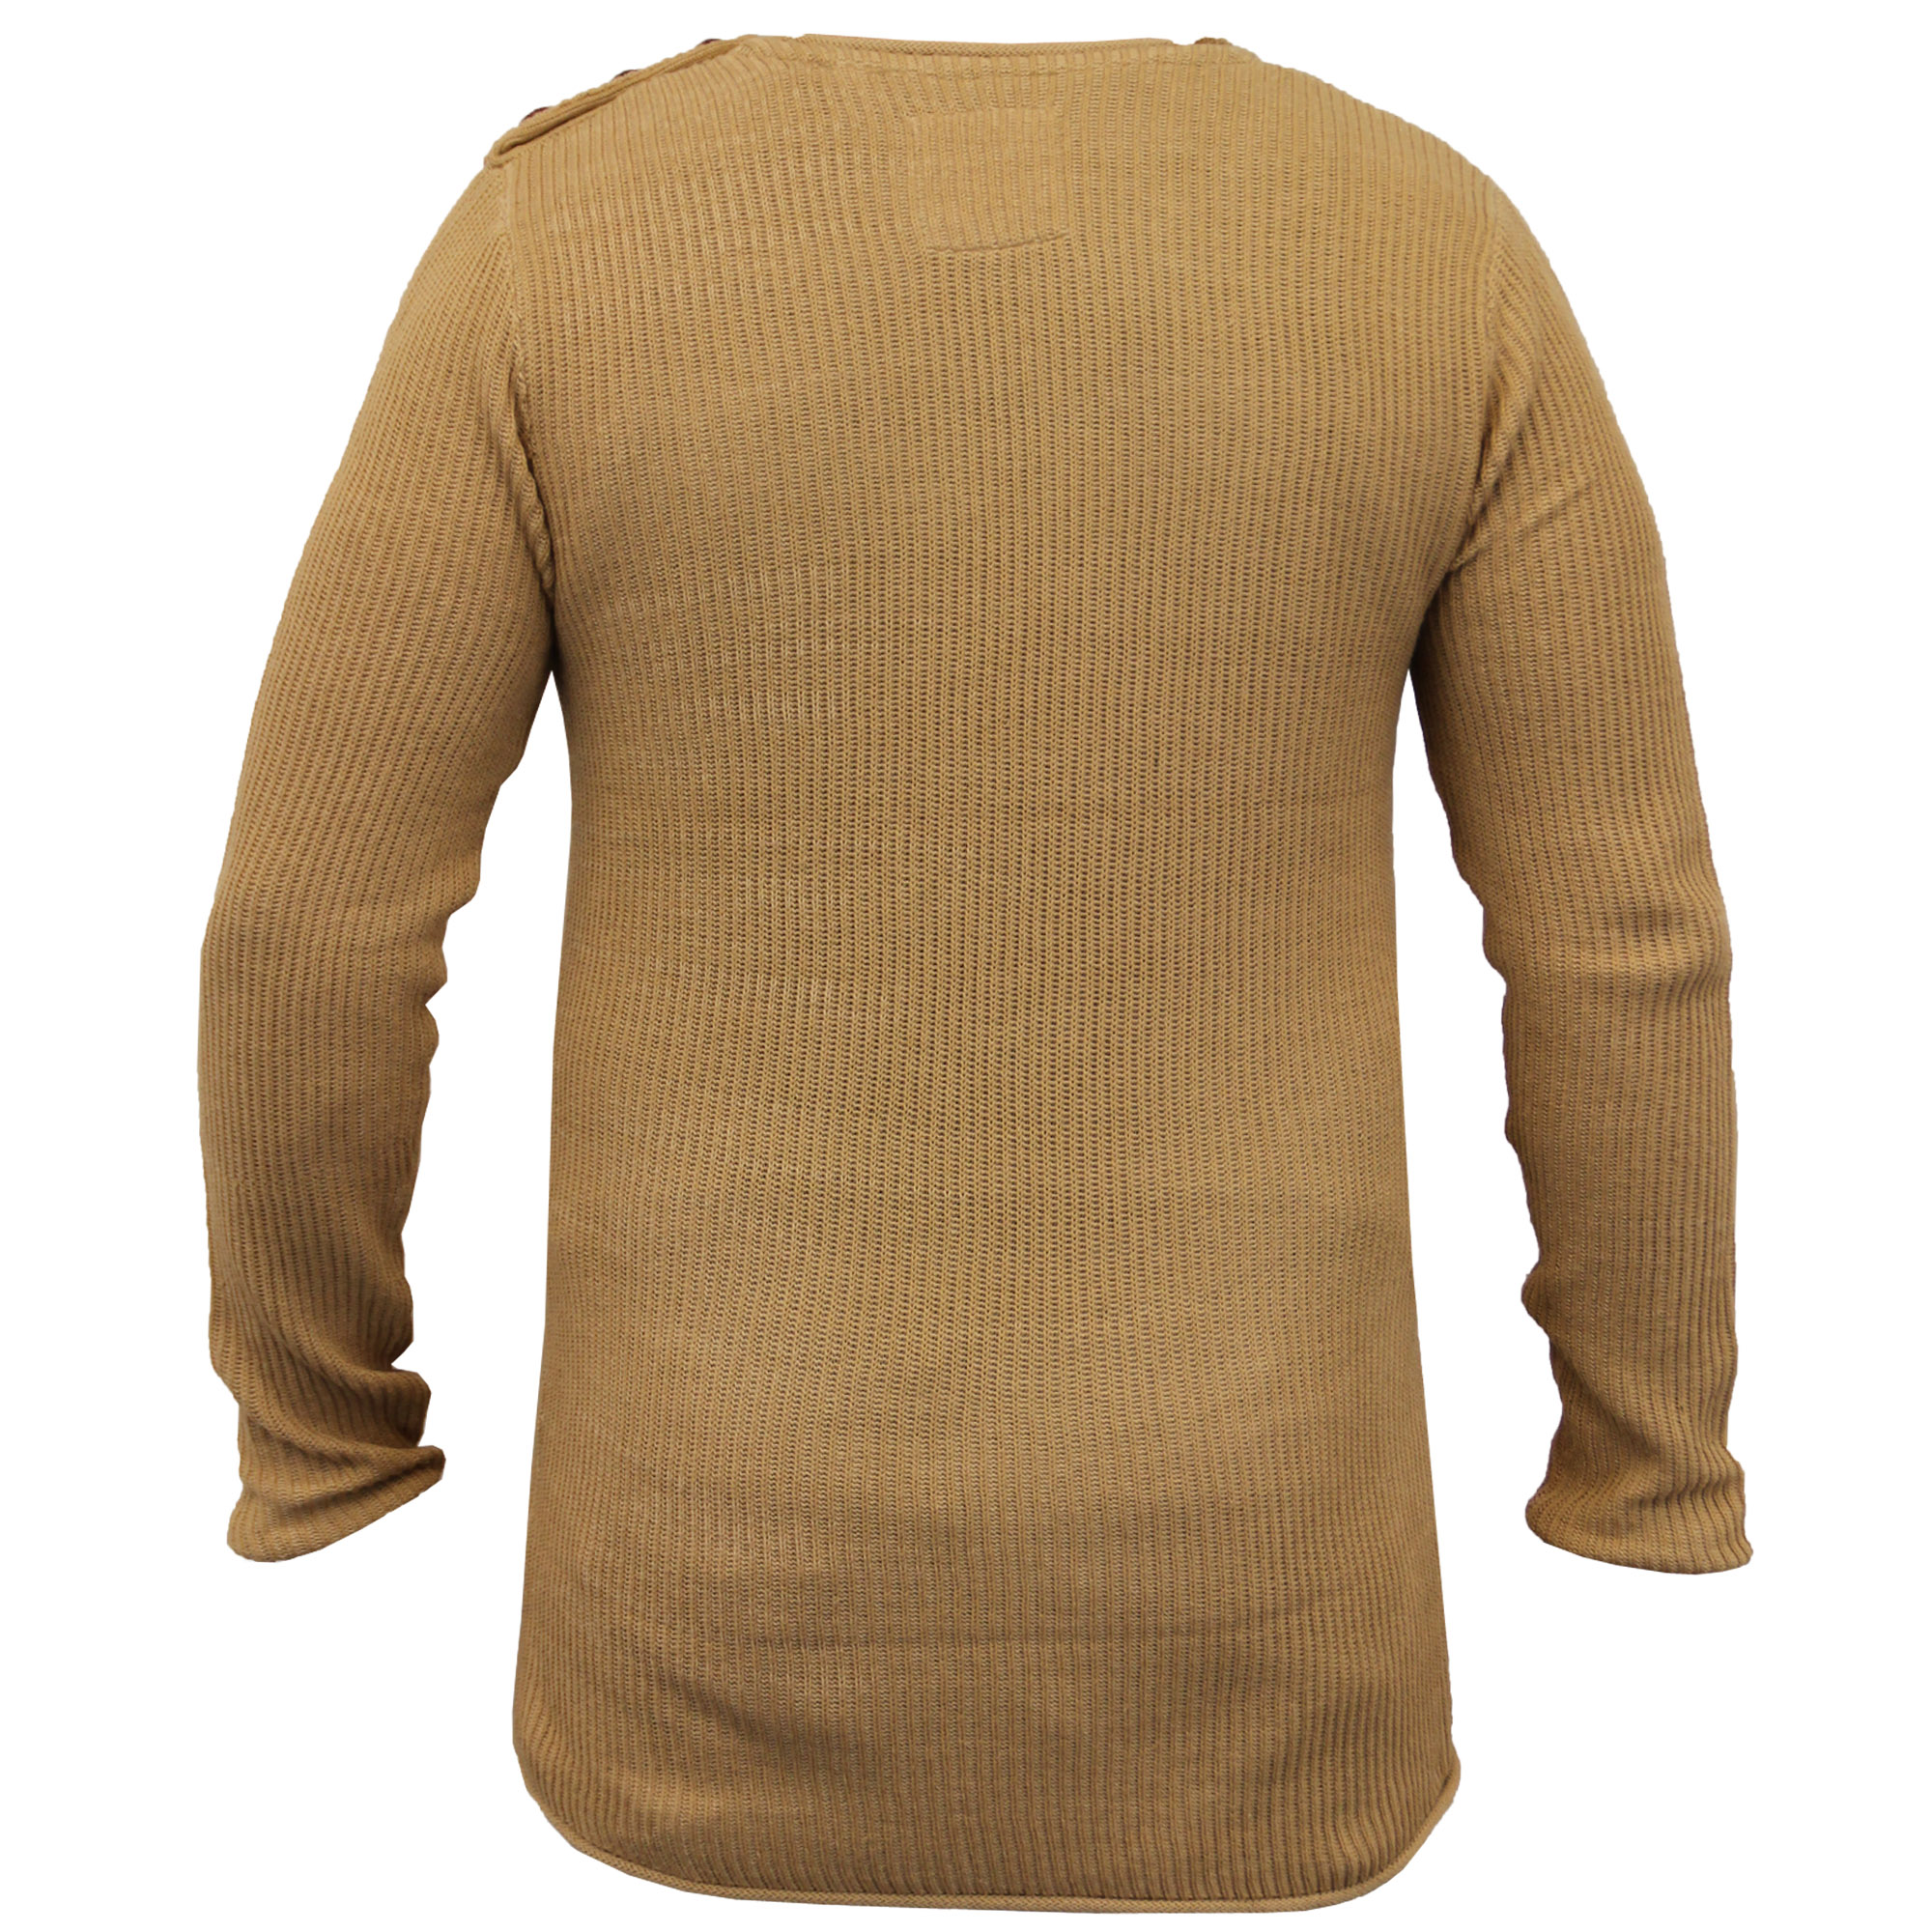 Mens-Long-Line-Jumper-Soul-Star-Sweater-High-Low-Hem-Top-Knitted-Pullover-Winter thumbnail 3